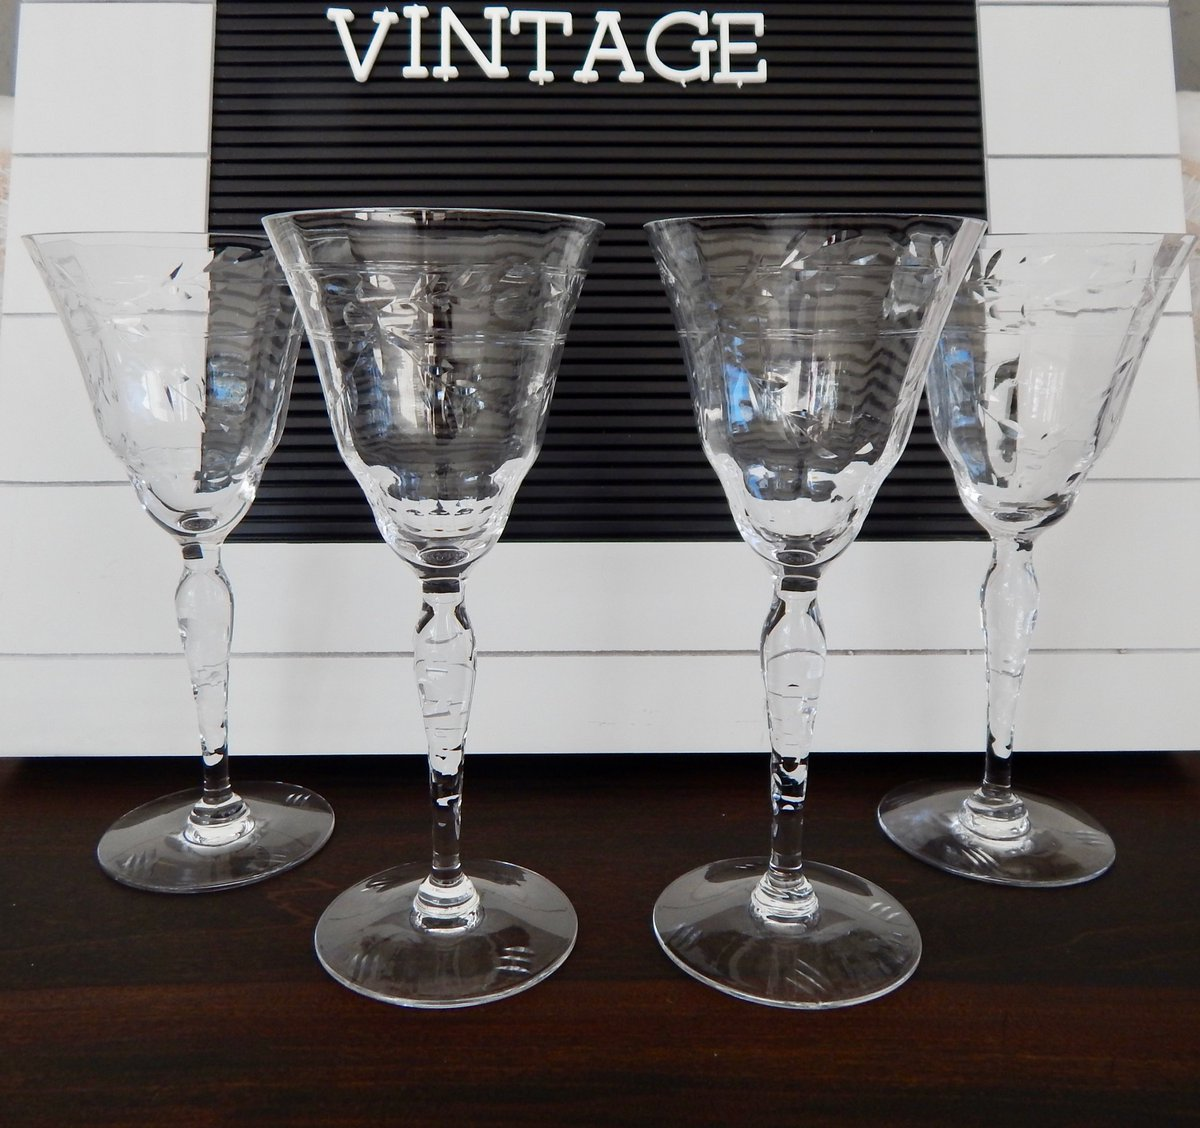 Mywarehouseofvintage On Twitter Excited To Share The Latest Addition To My Etsy Shop Vintage Etched Wine Glasses Set Of 4 Art Deco Lattice Etched Barware Wine Tasting Glasses Wedding Stemware Https T Co Ilkvxebx6u Housewares